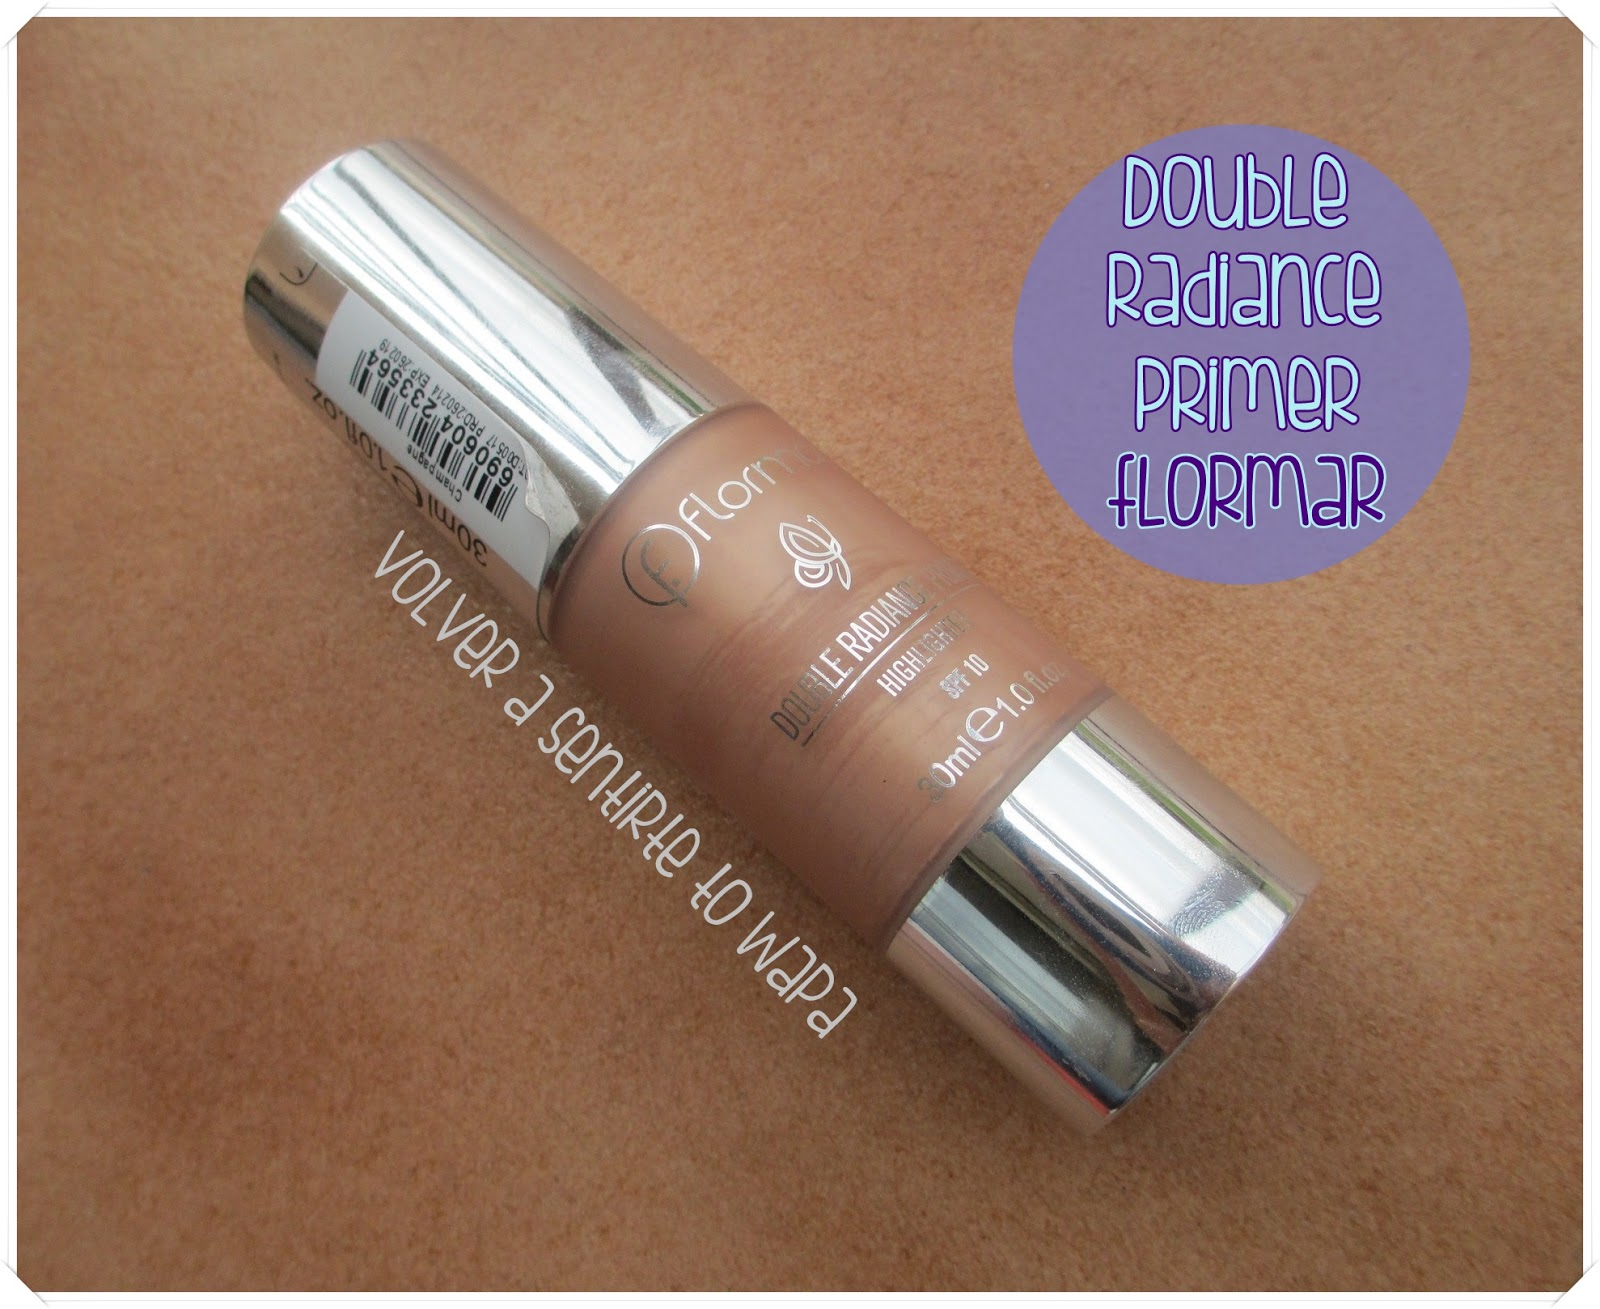 Double Radiance Primer Highlighter de Flormar